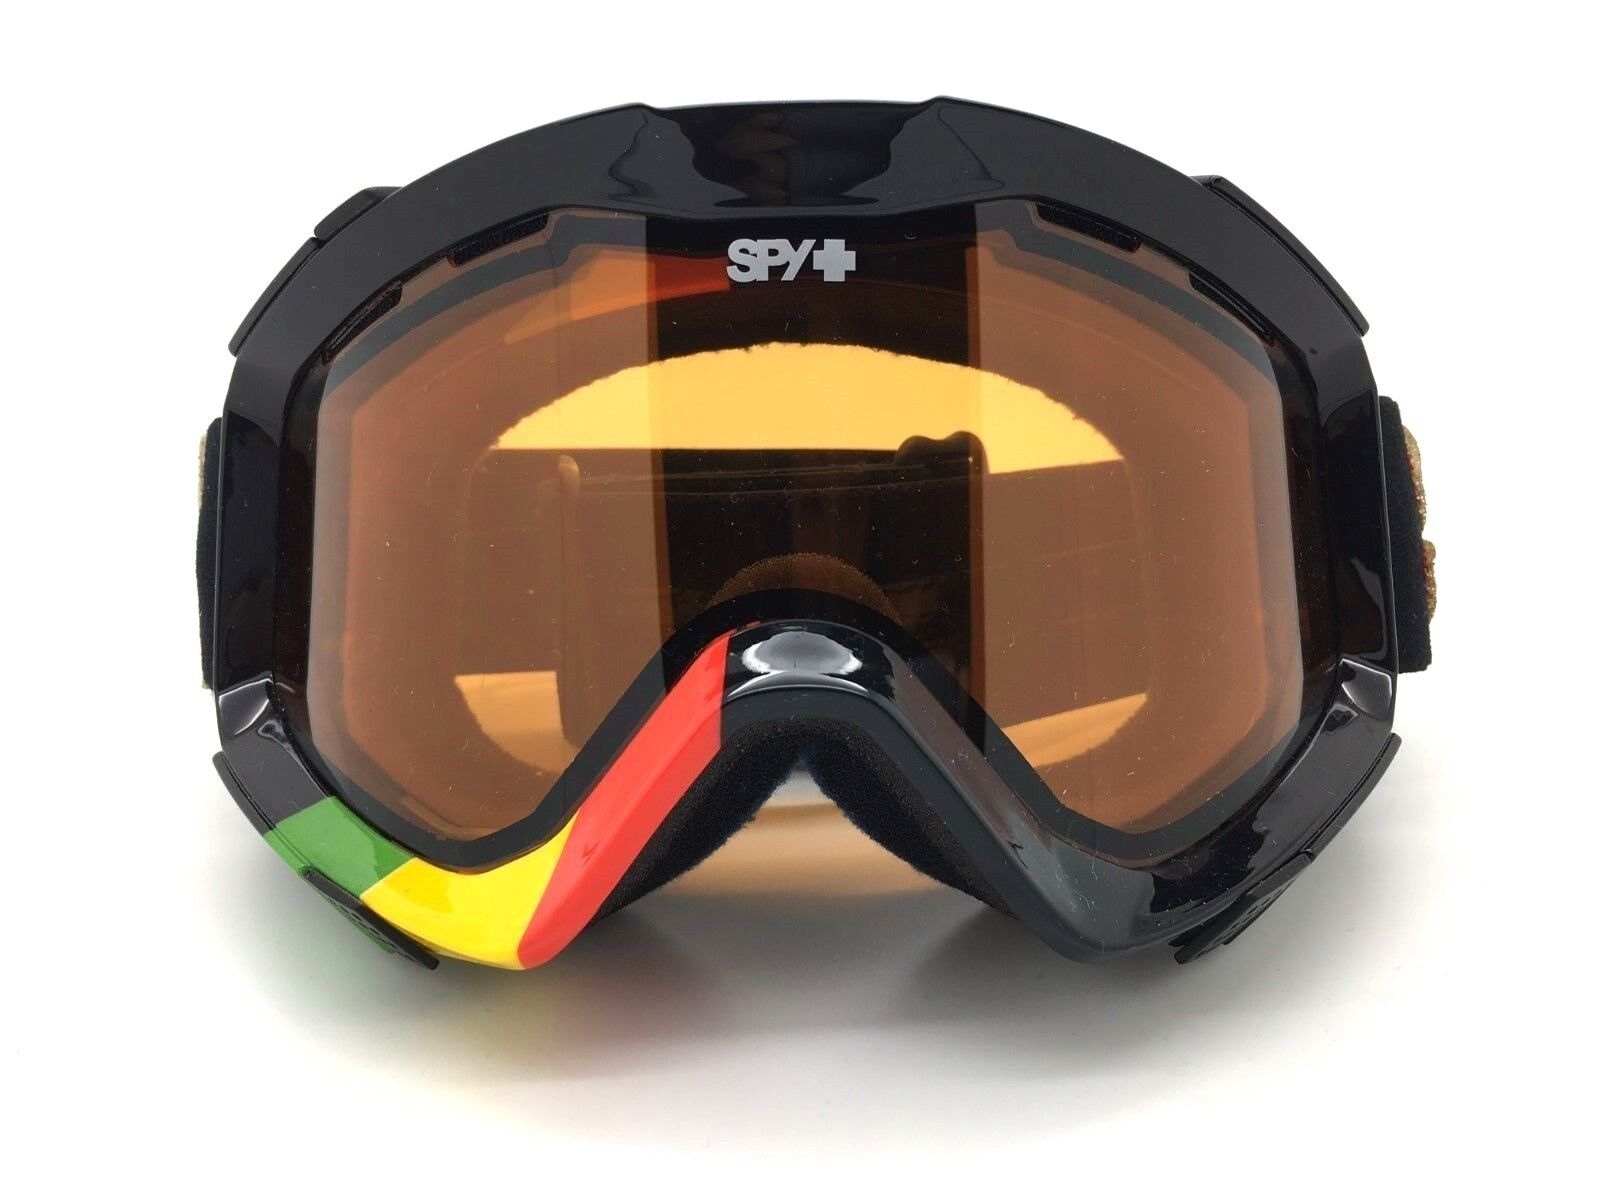 SPY+ Optic ZED Snow Goggle LION Red Yellow Green Frame with Persimmon Lens